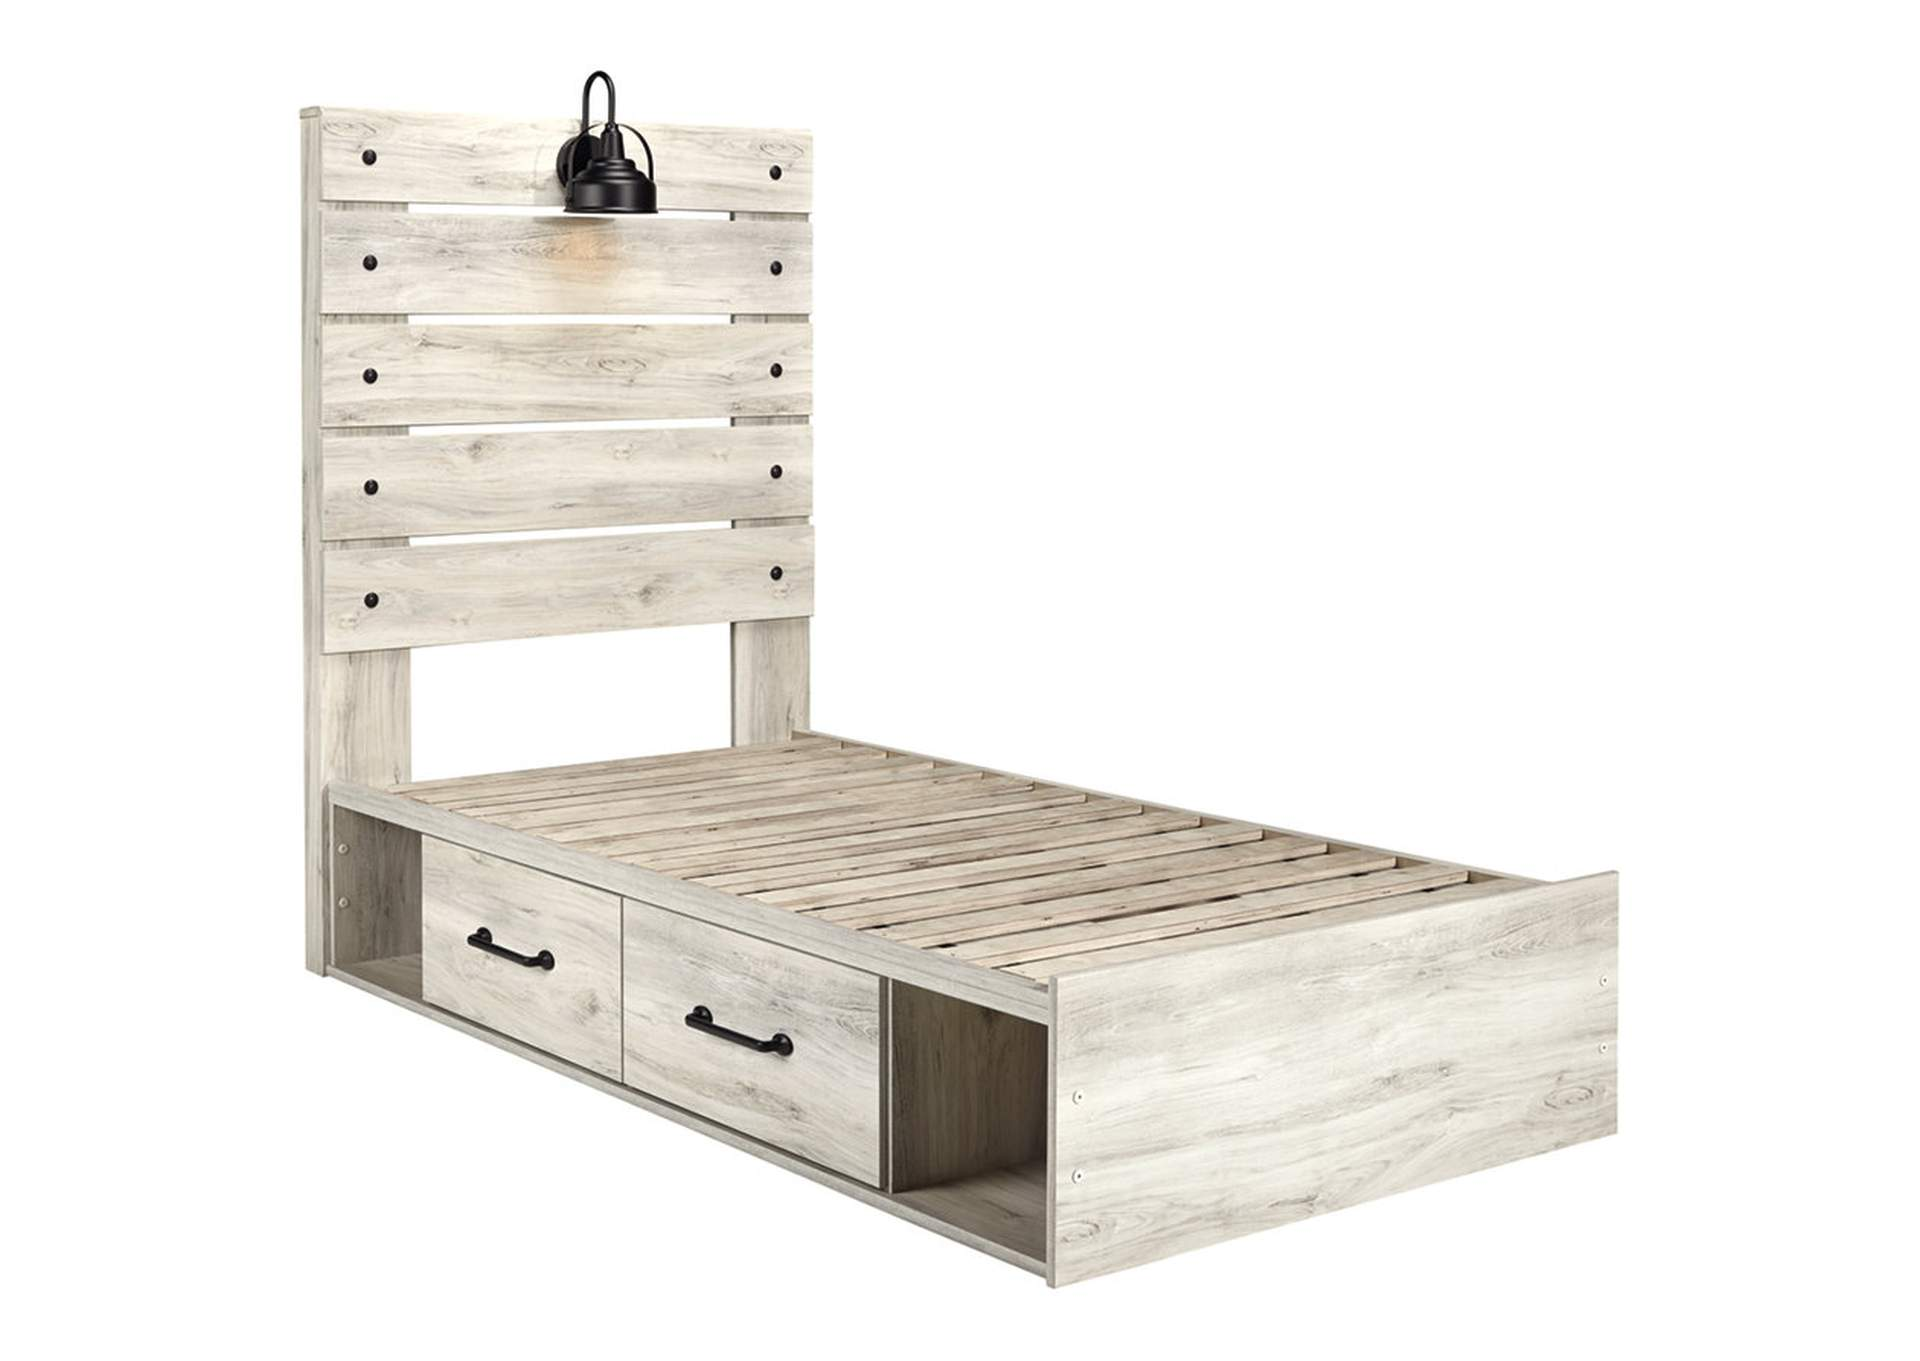 Cambeck Twin Panel Bed with 4 Storage Drawers,Signature Design By Ashley